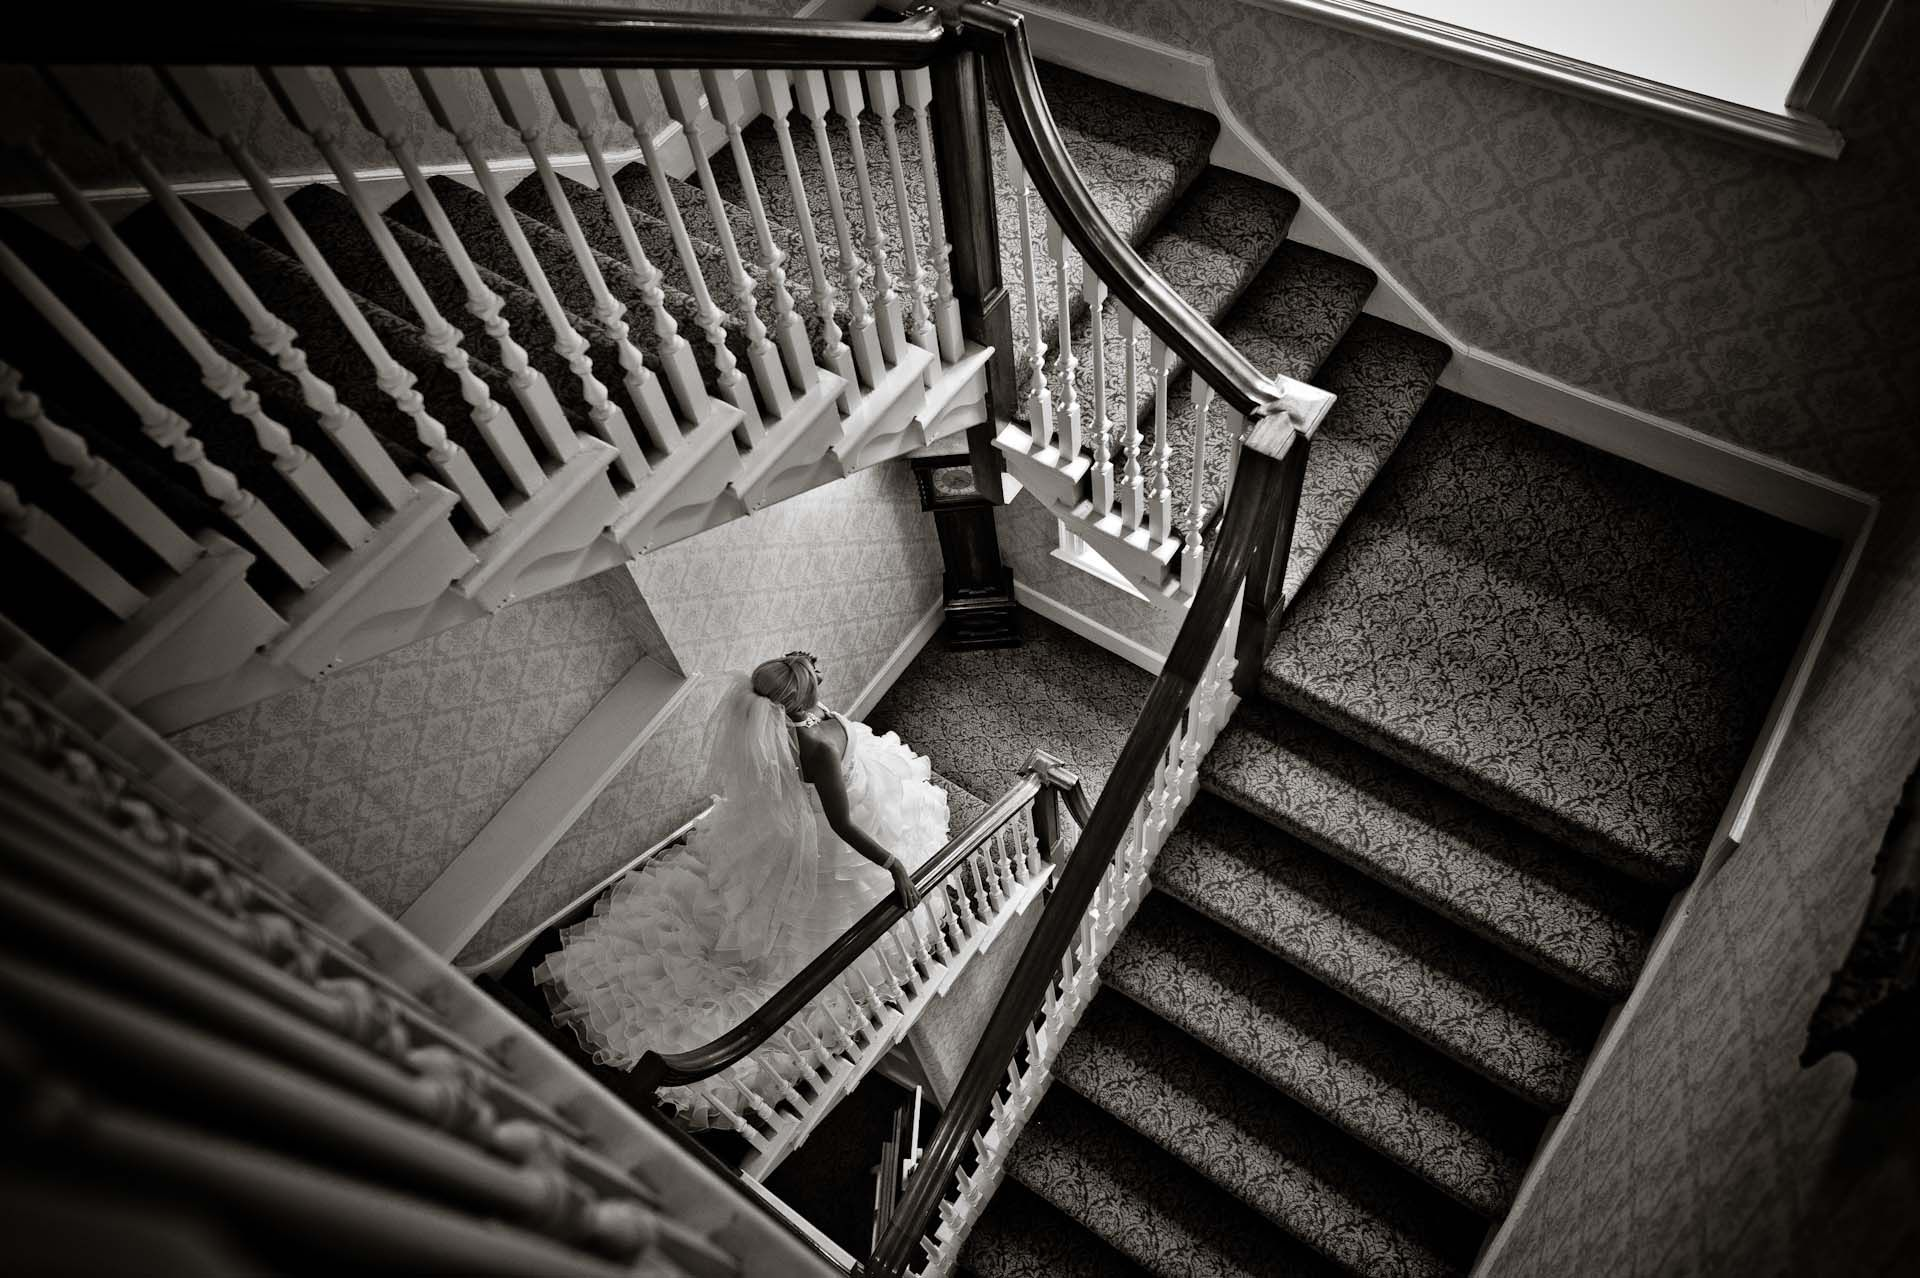 Aspect photography by waterford photographer shane oneill